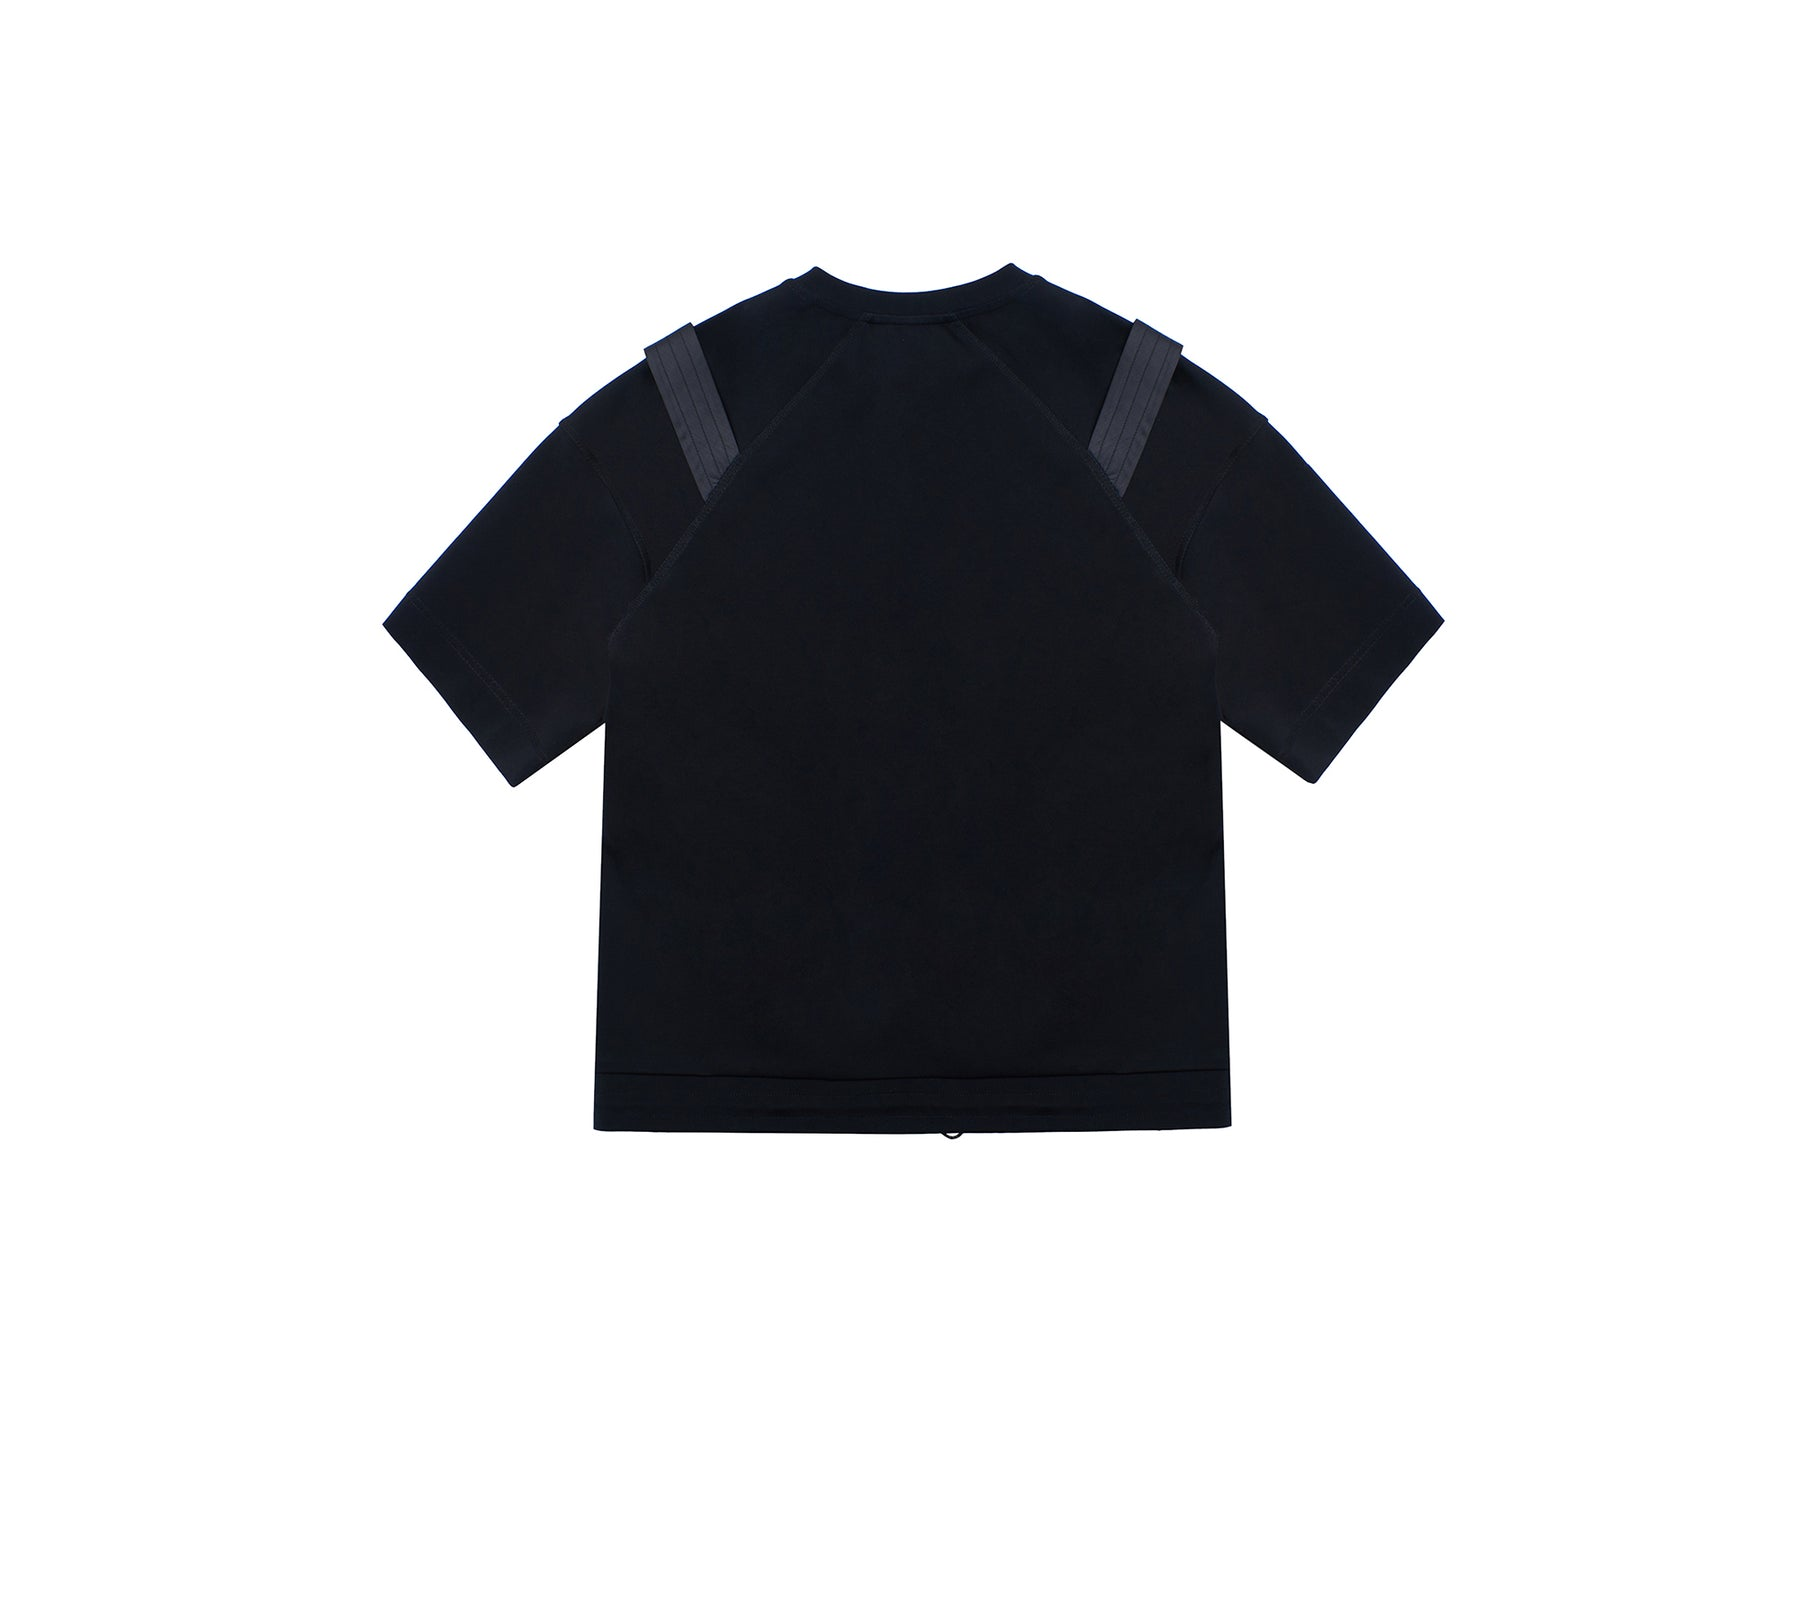 SHOULDER GIRDLE CREWNECK T-SHIRT